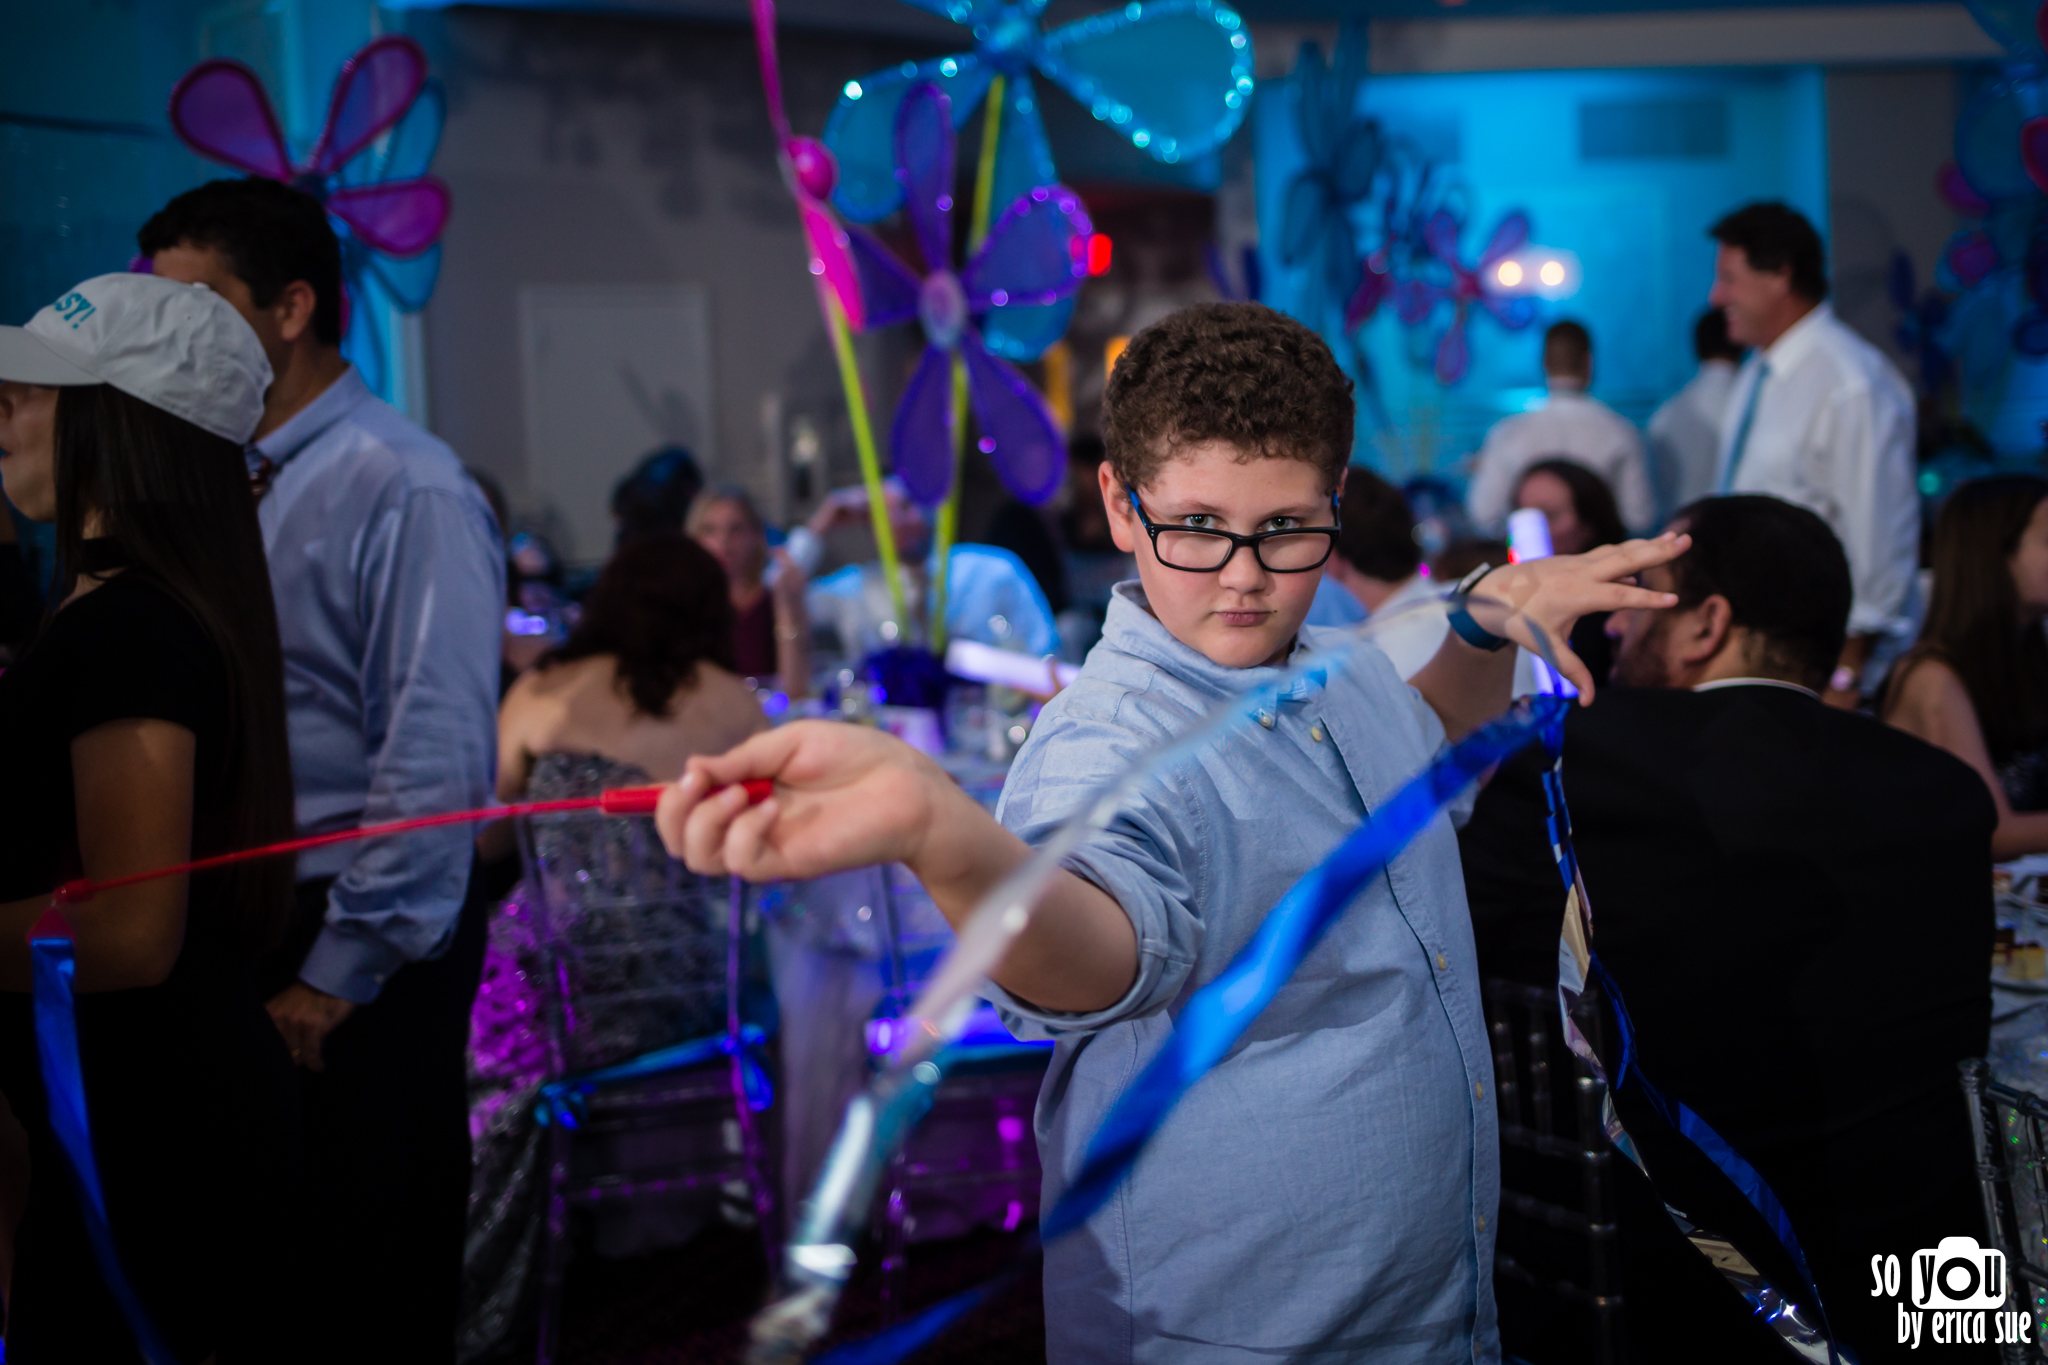 bat-mitzvah-photography-south-florida-broward-kol-ami-plantation-so-you-by-erica-sue-1836.jpg